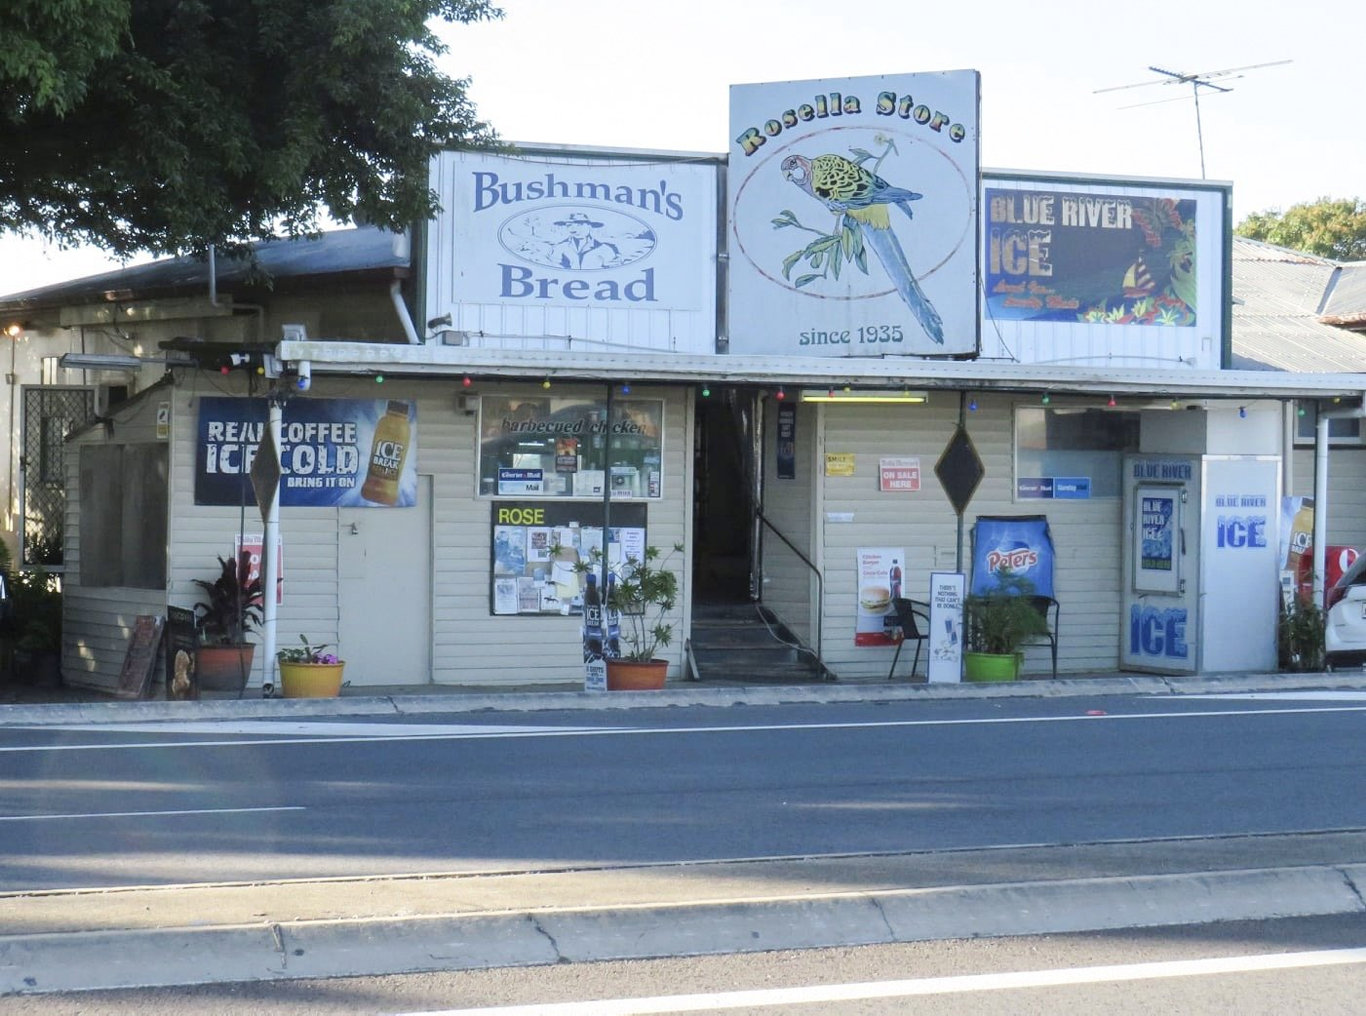 The historic Rosella Store is under threat. But the community is fighting to save the icon.